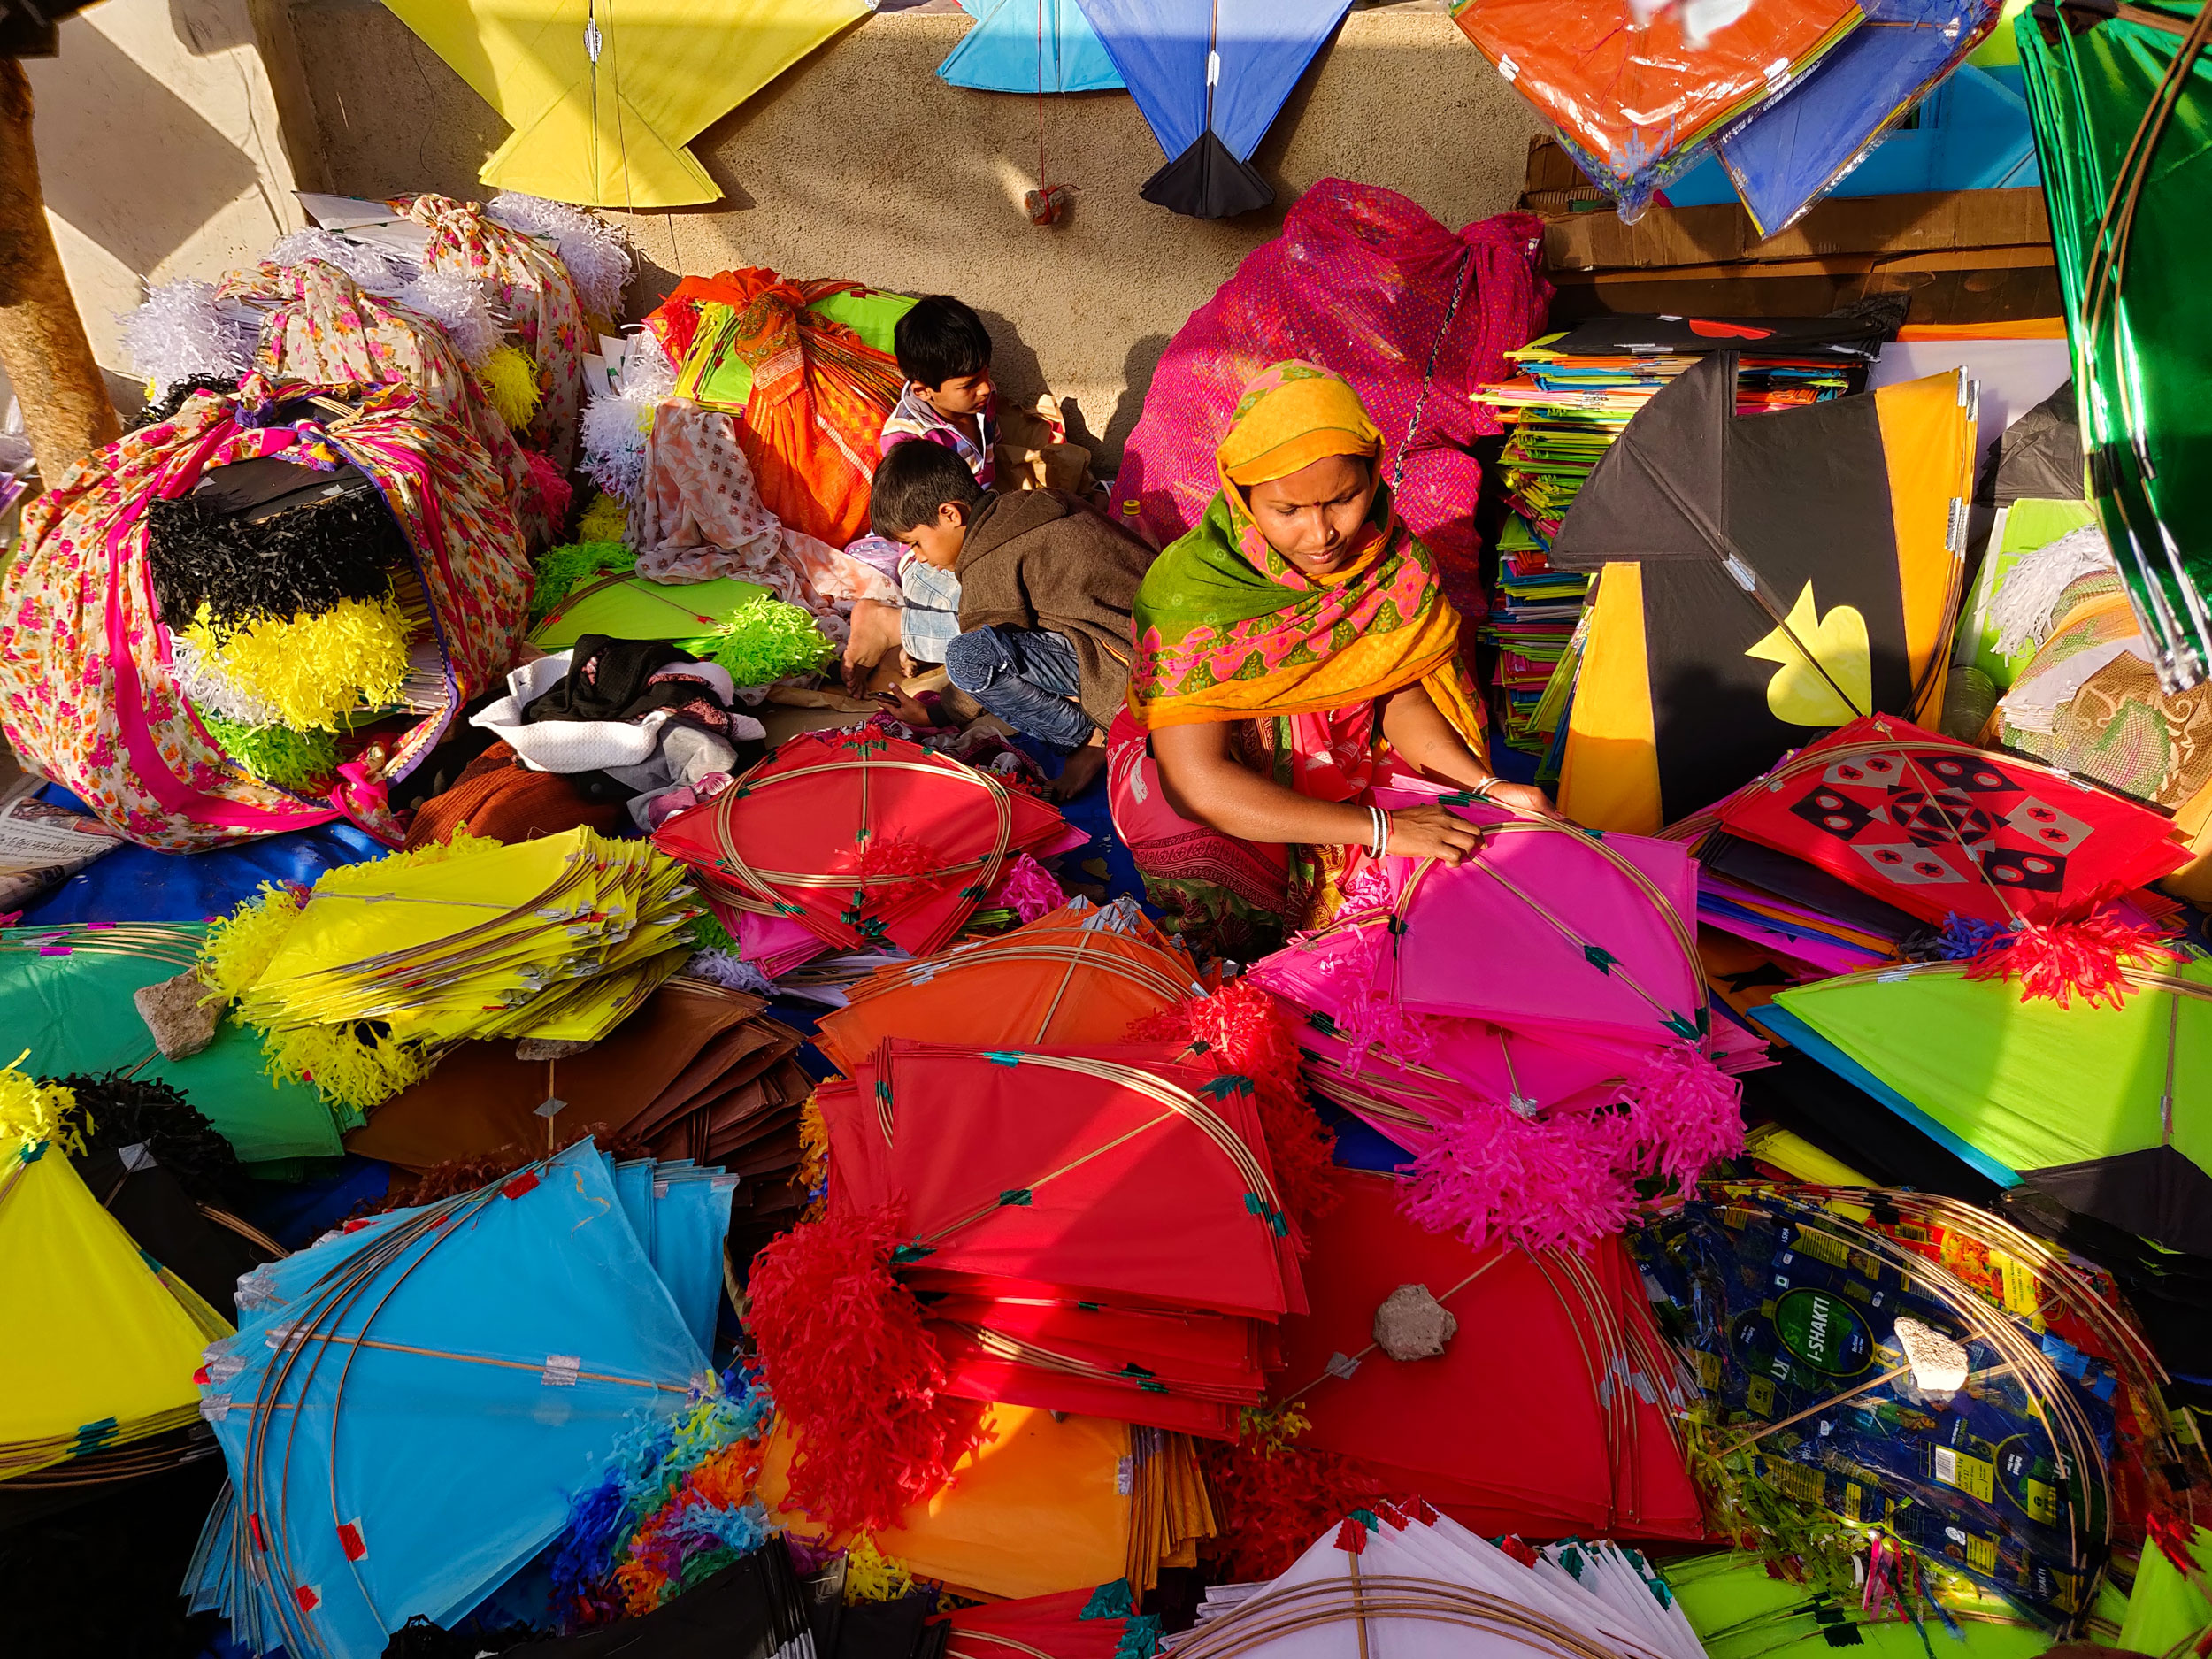 24 hours before Makar Sankranti – this is how the streets of Gujarat look like